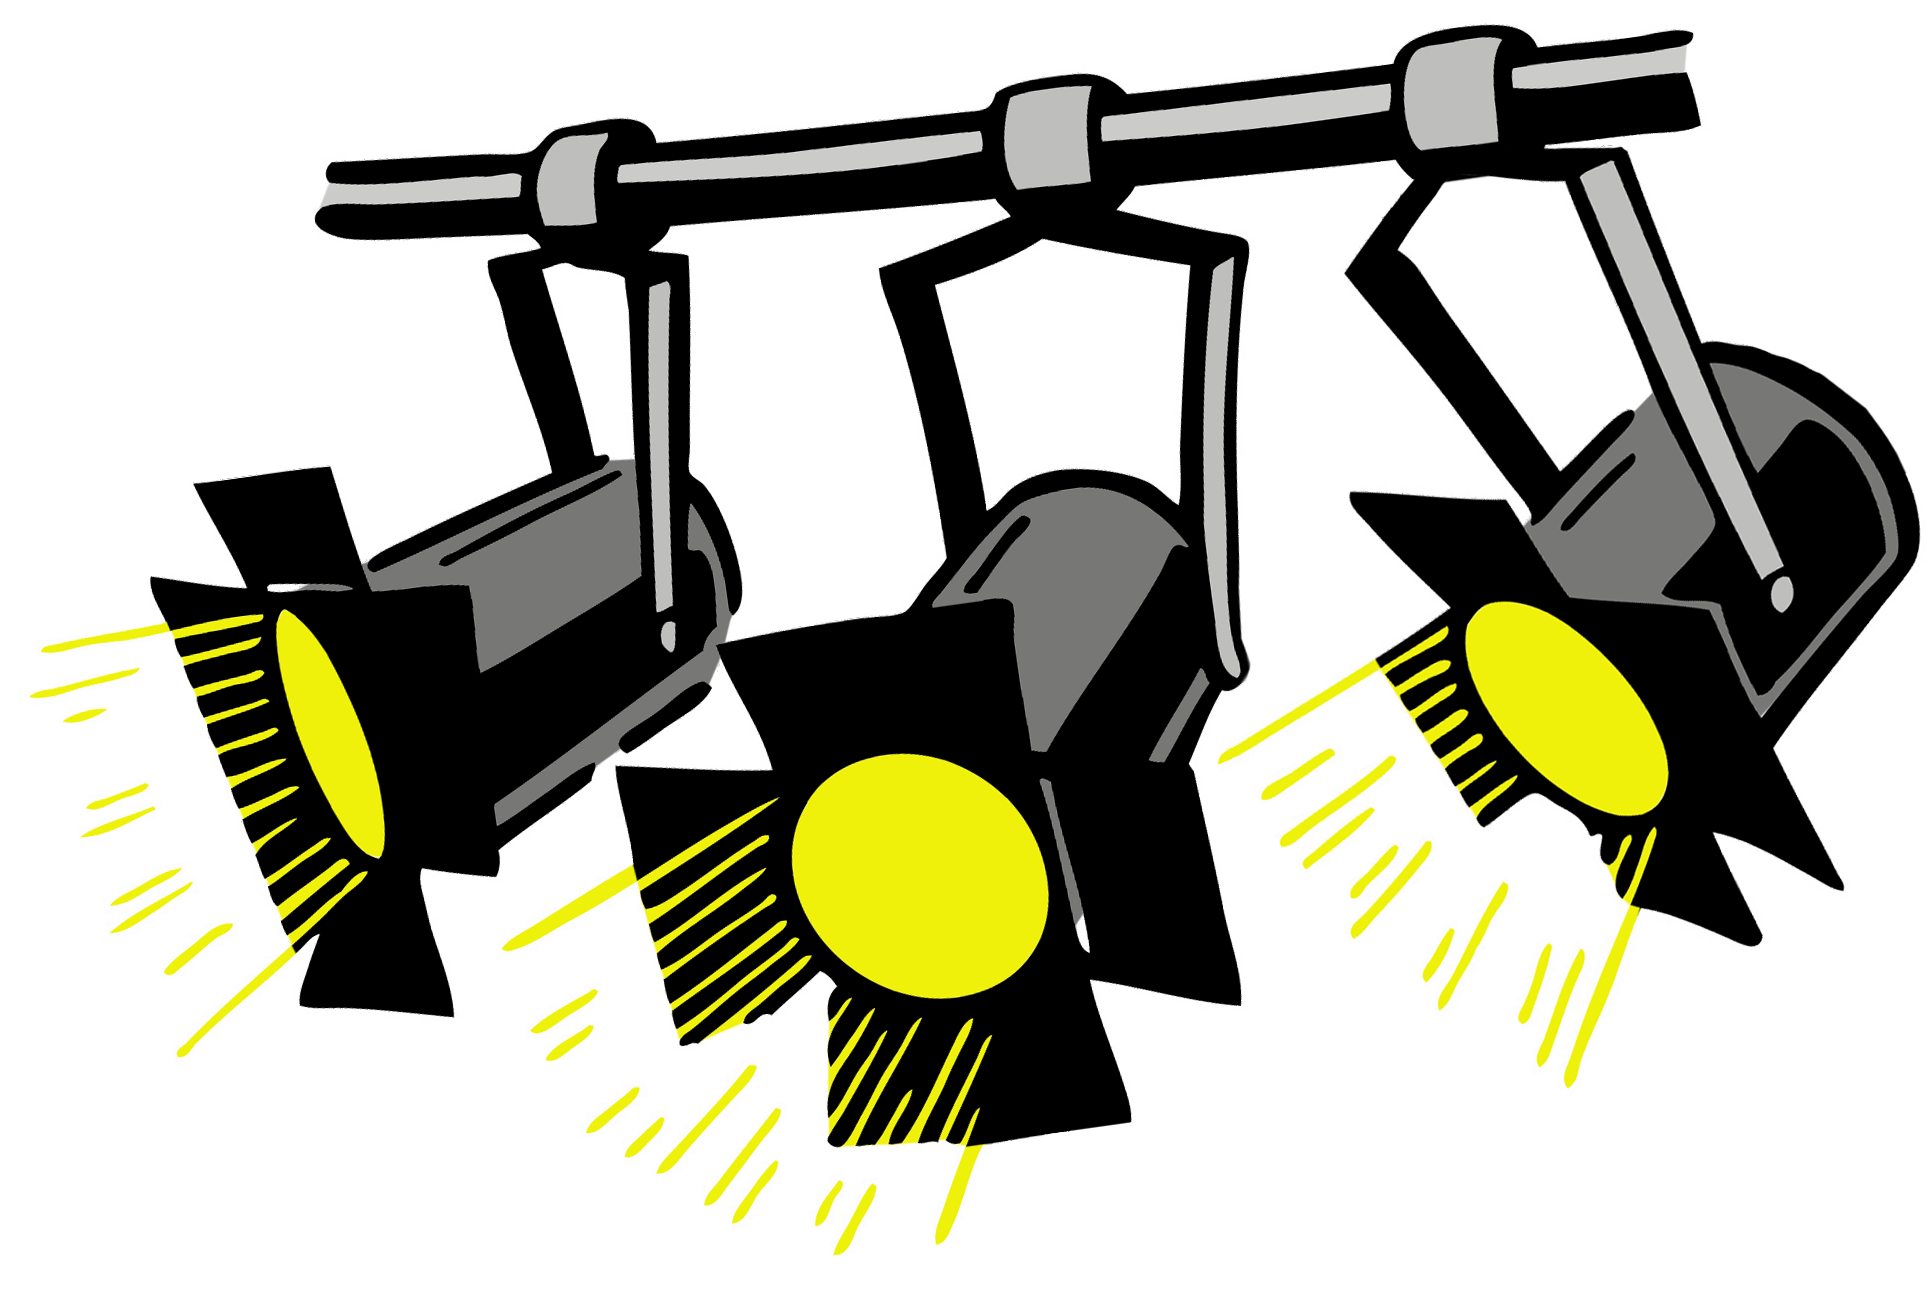 Lights clipart theater, Lights theater Transparent FREE ...